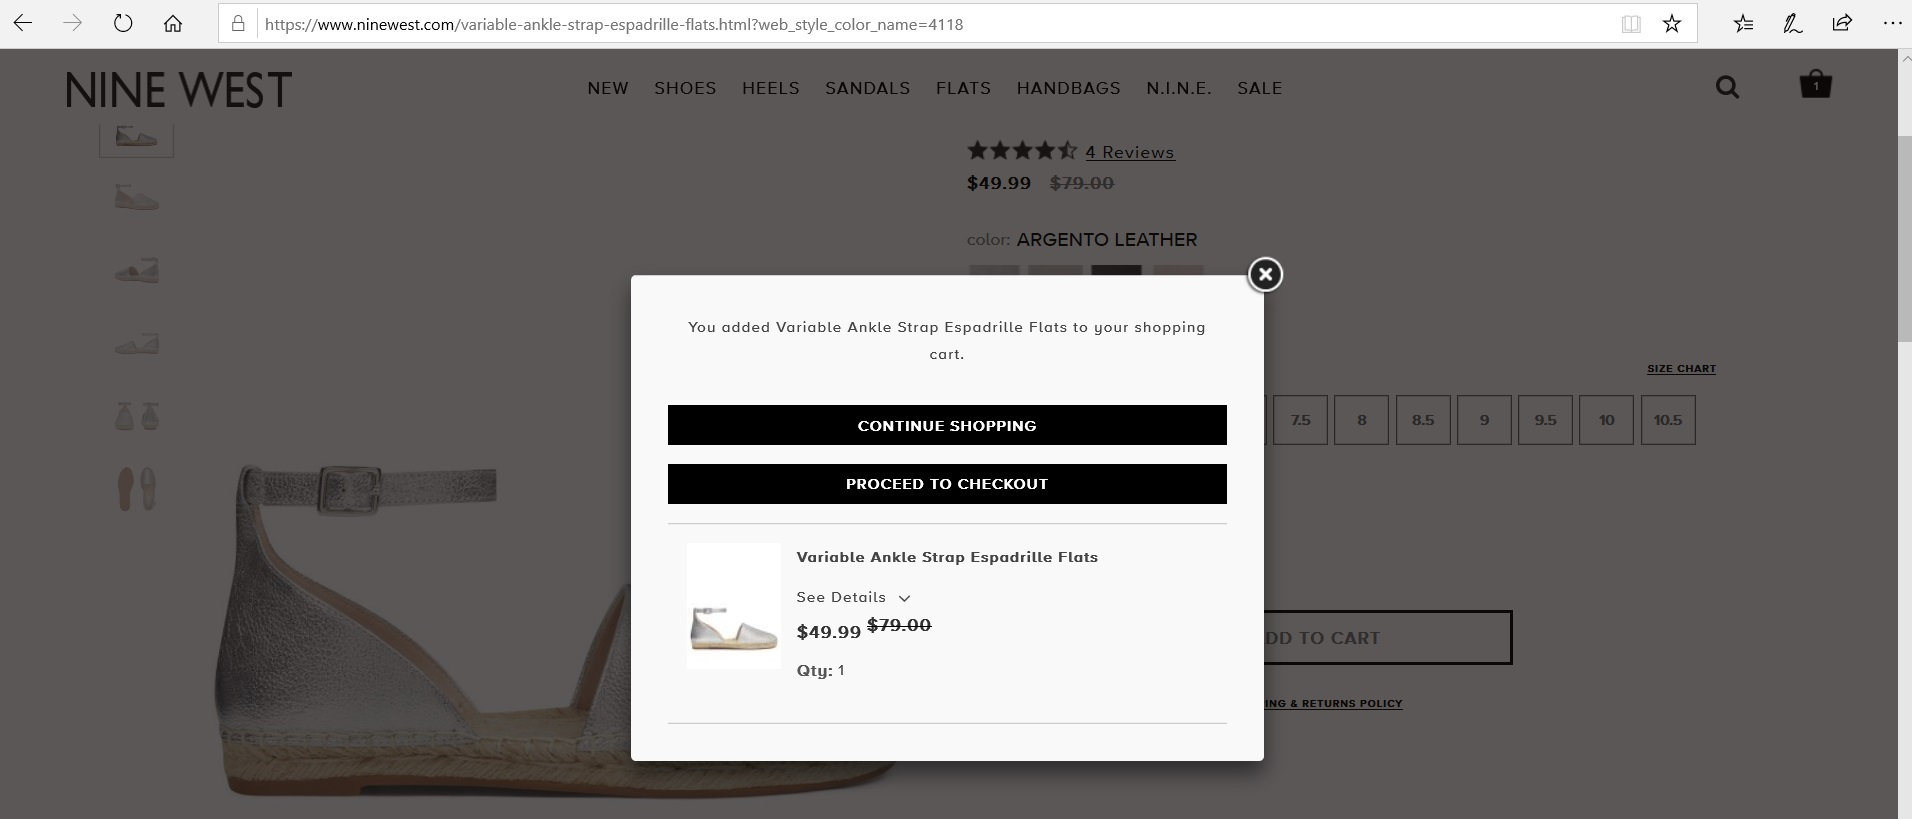 Pop-up to continue shopping or proceed to checkout.